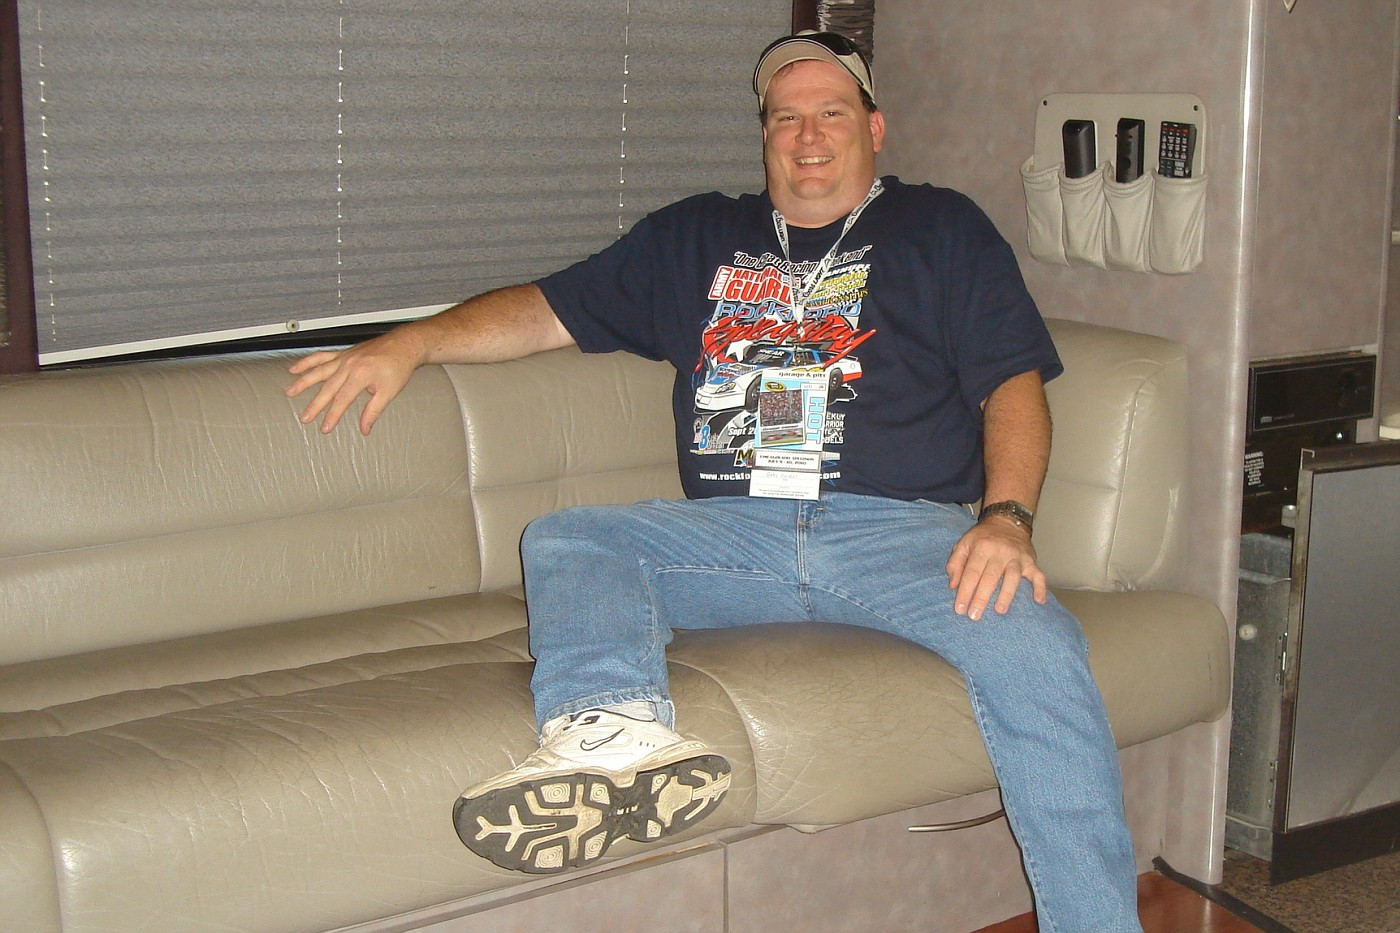 Inside the Coors Light Party Bus